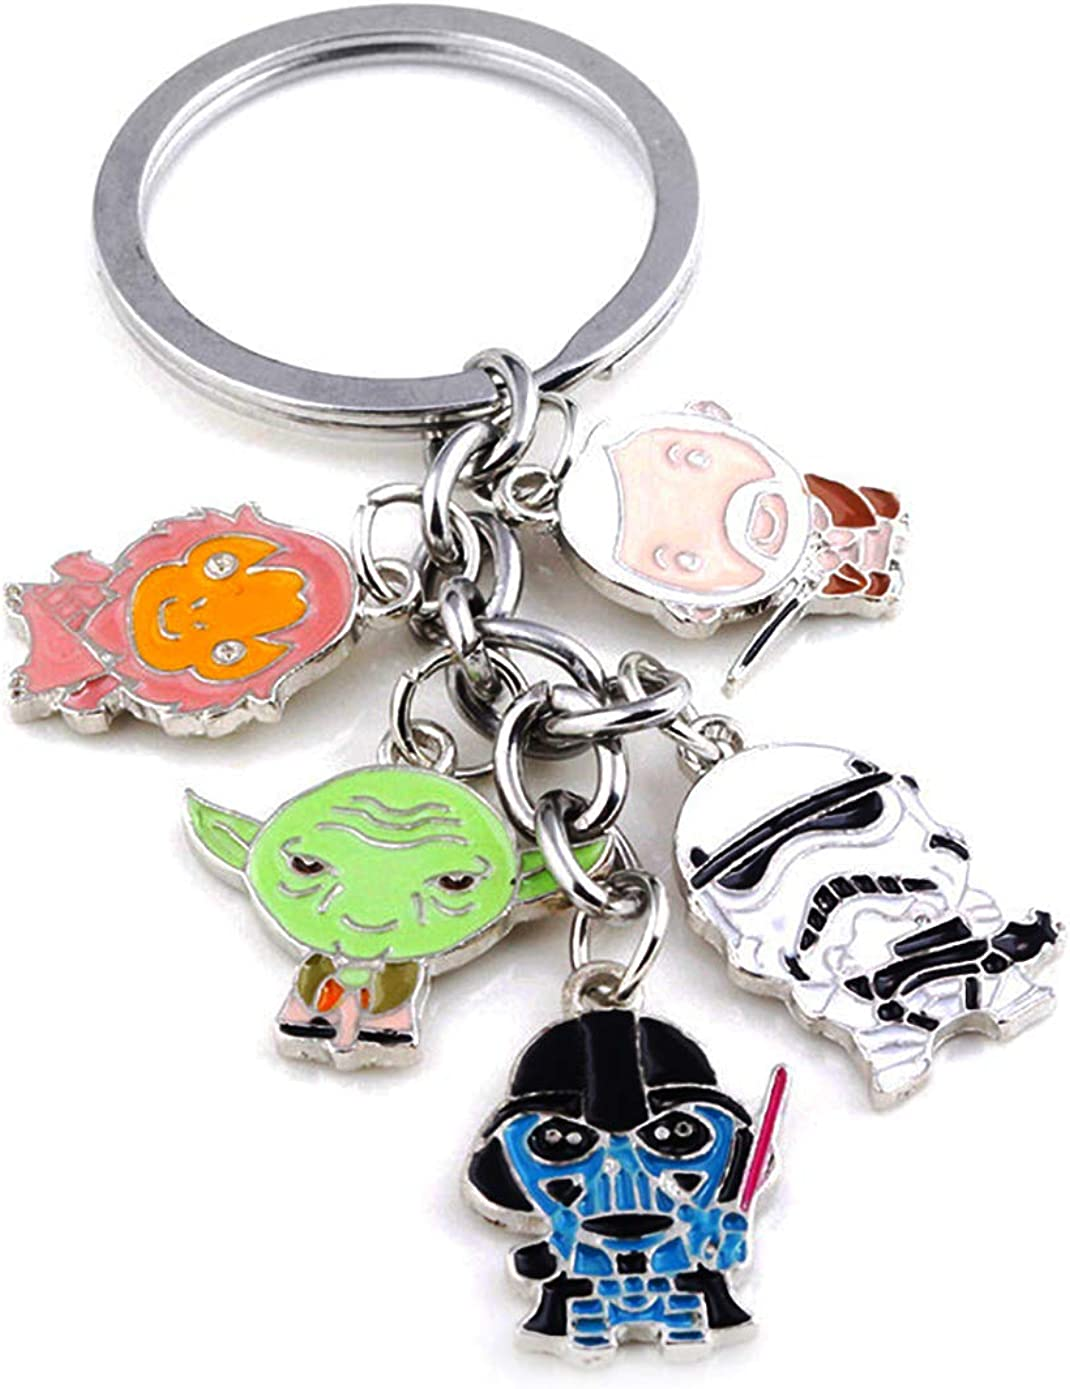 Monai Charm Pendant Star Wars Keychain Millenium Falcon Force Awakens BB-8 Keyloops